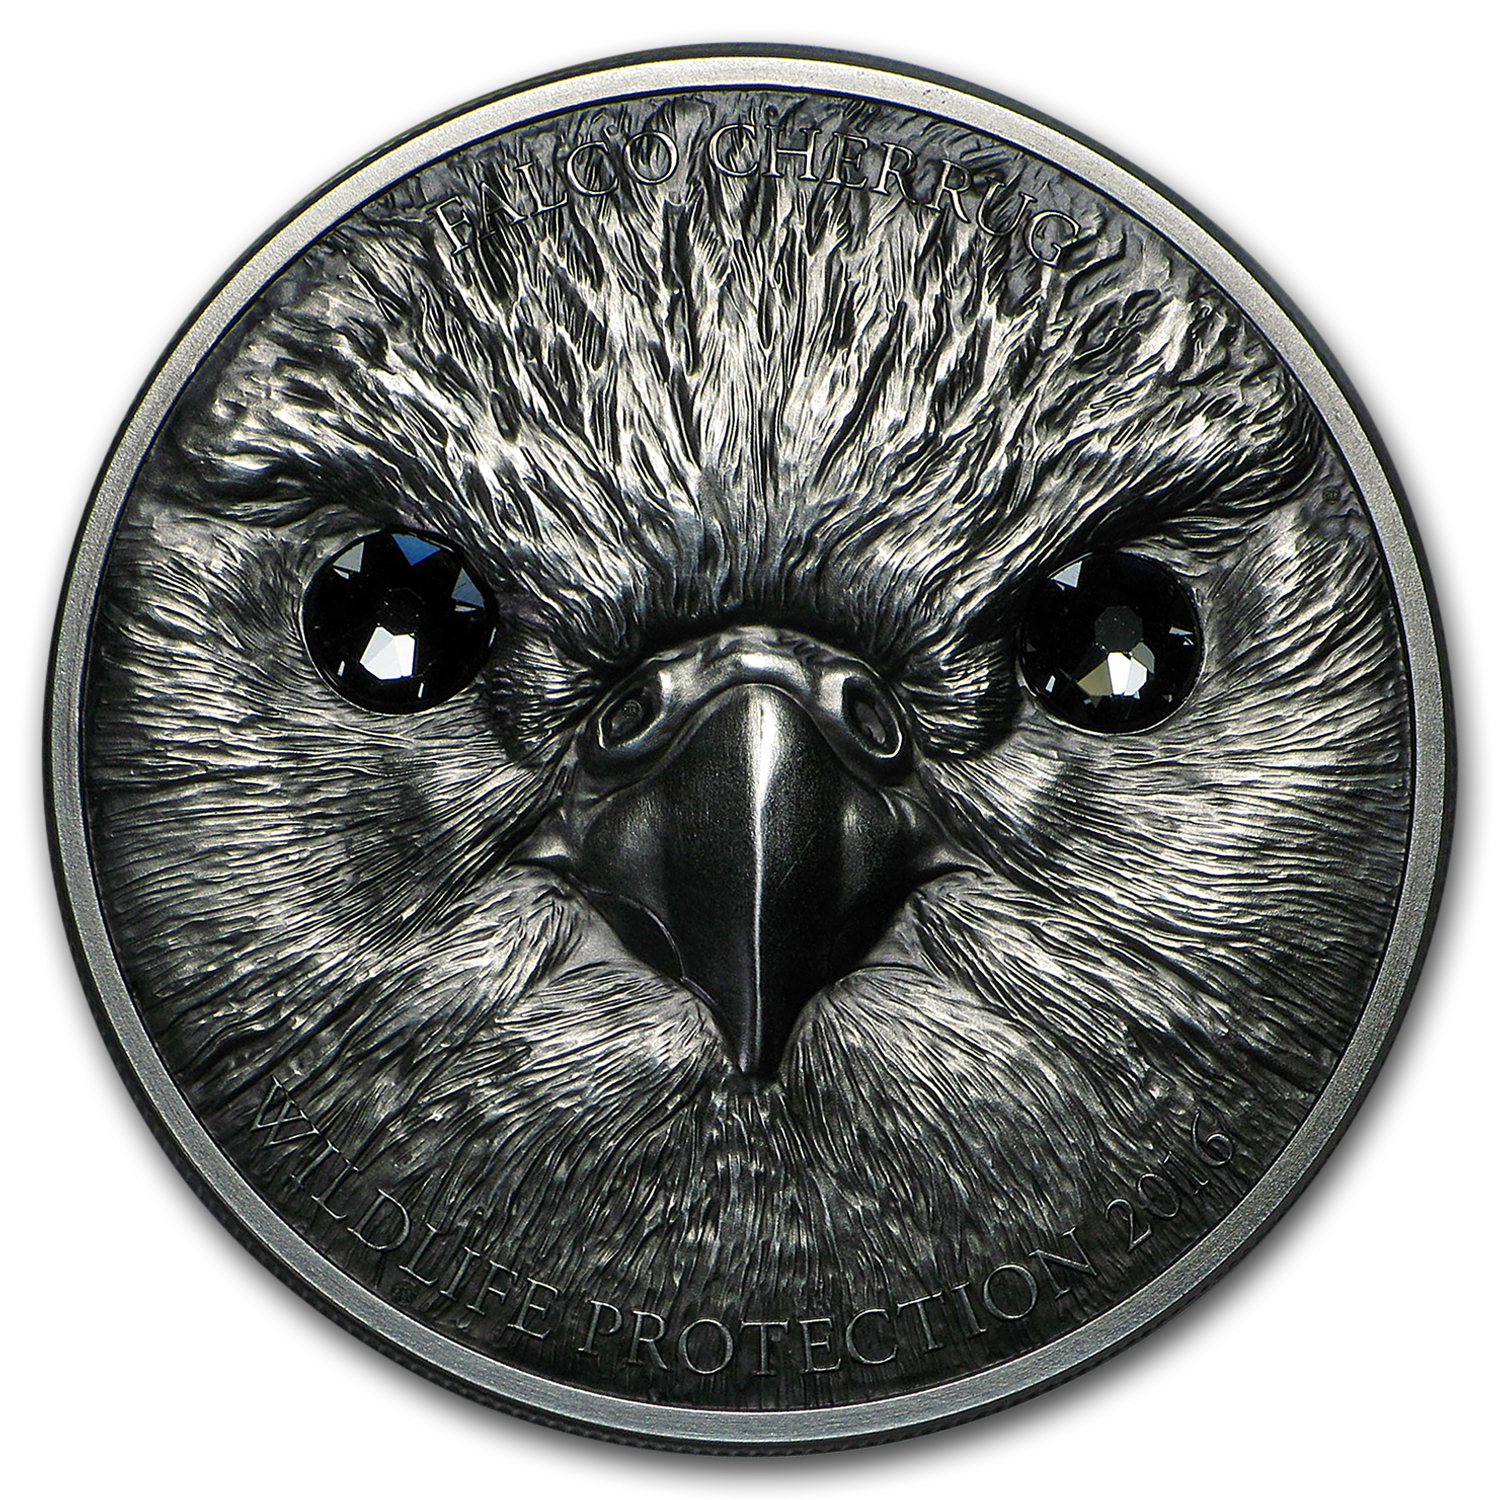 2016 Mongolia 1 oz Silver Wildlife Protection Saker Falcon